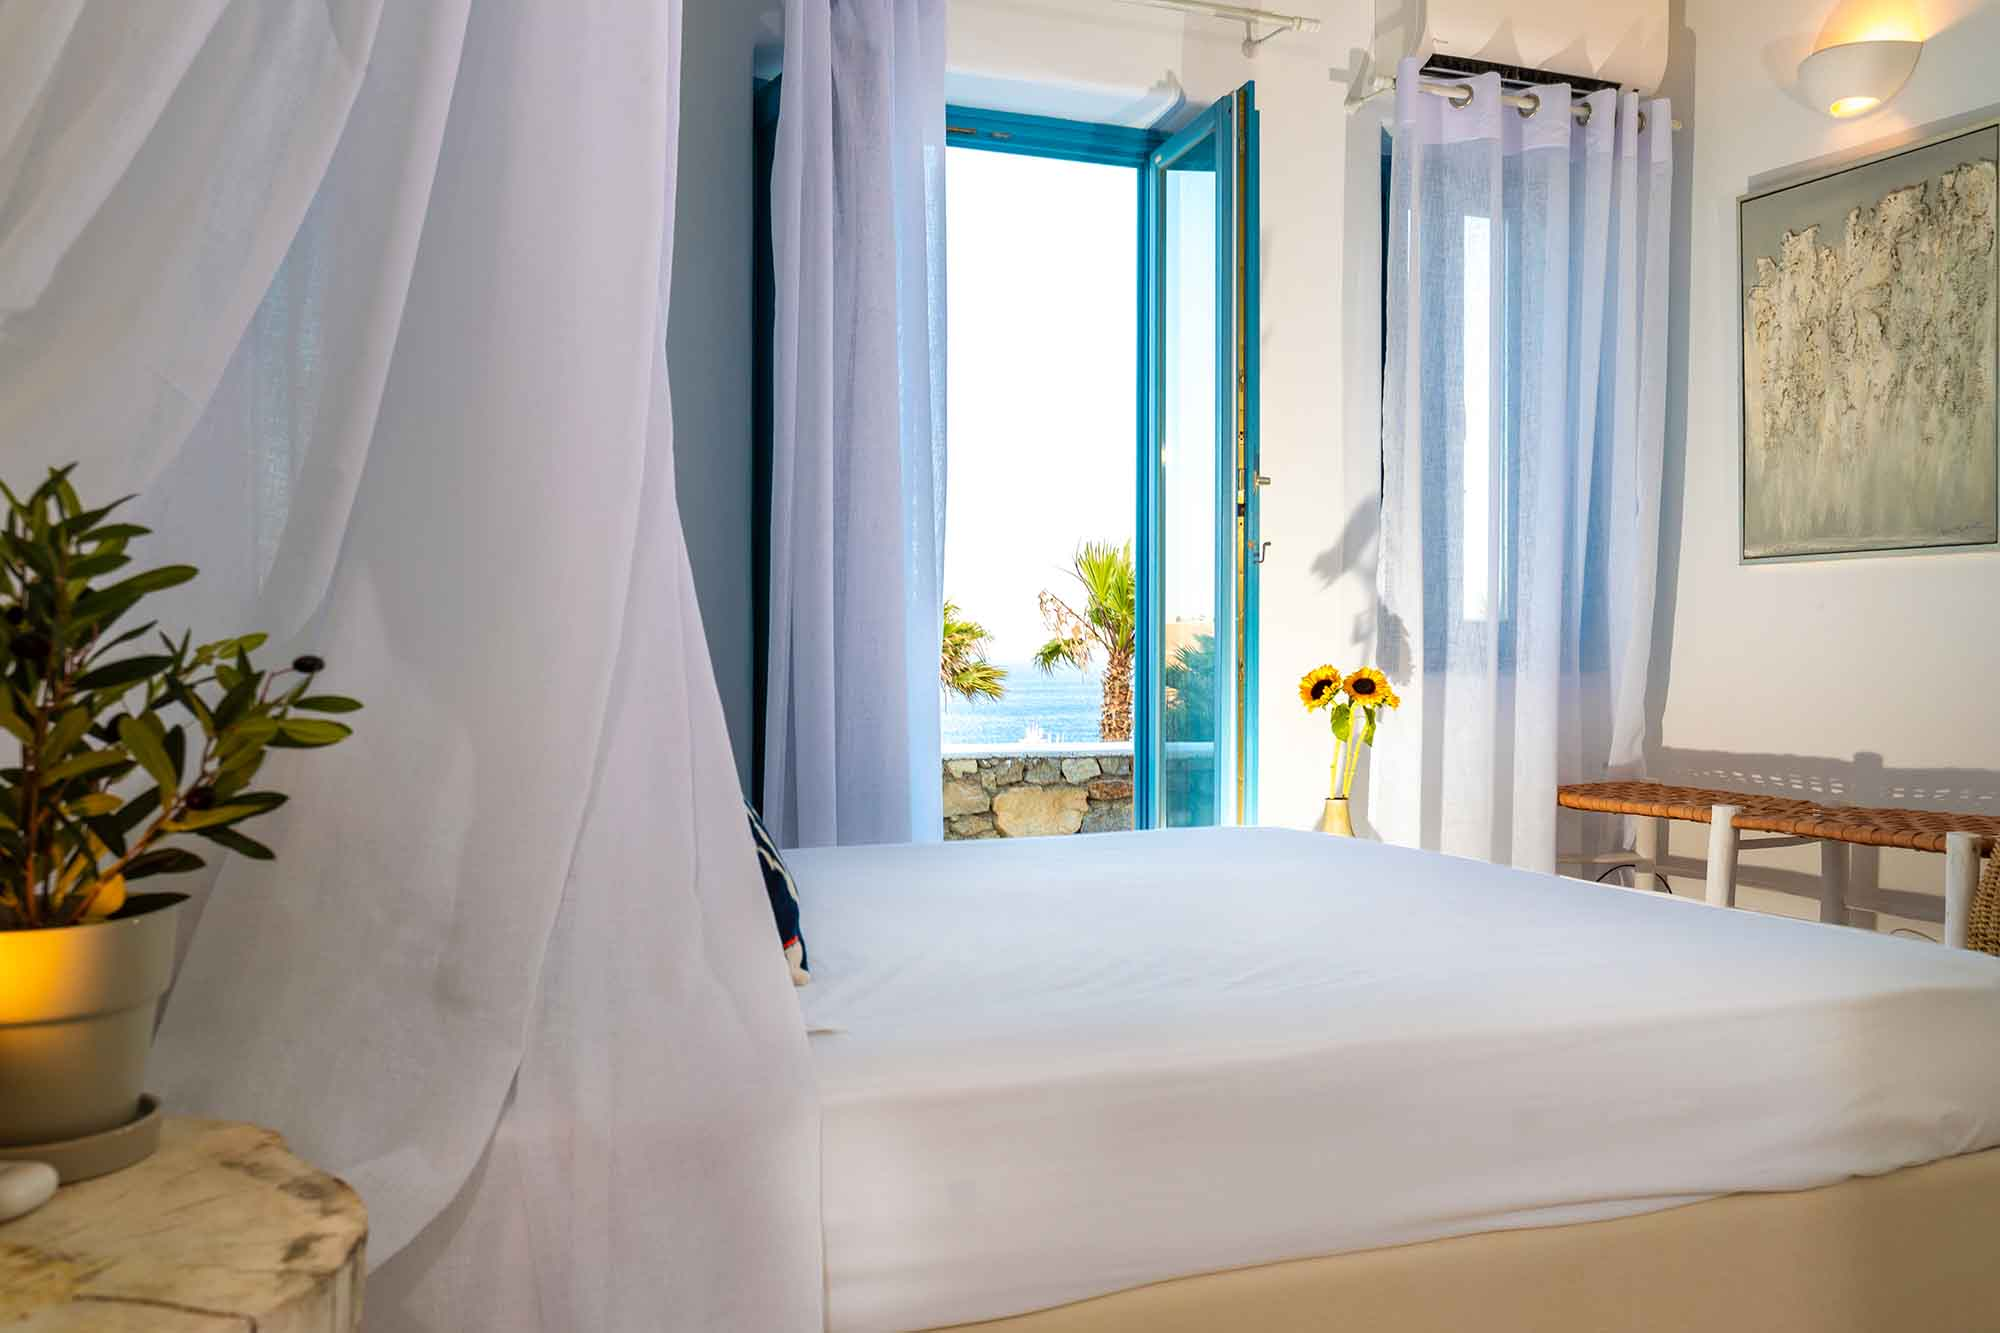 RENT A LUXURIOUS VILLA BY THE SEA IN MYKONOS - VILLA KARKOS - room with sea view